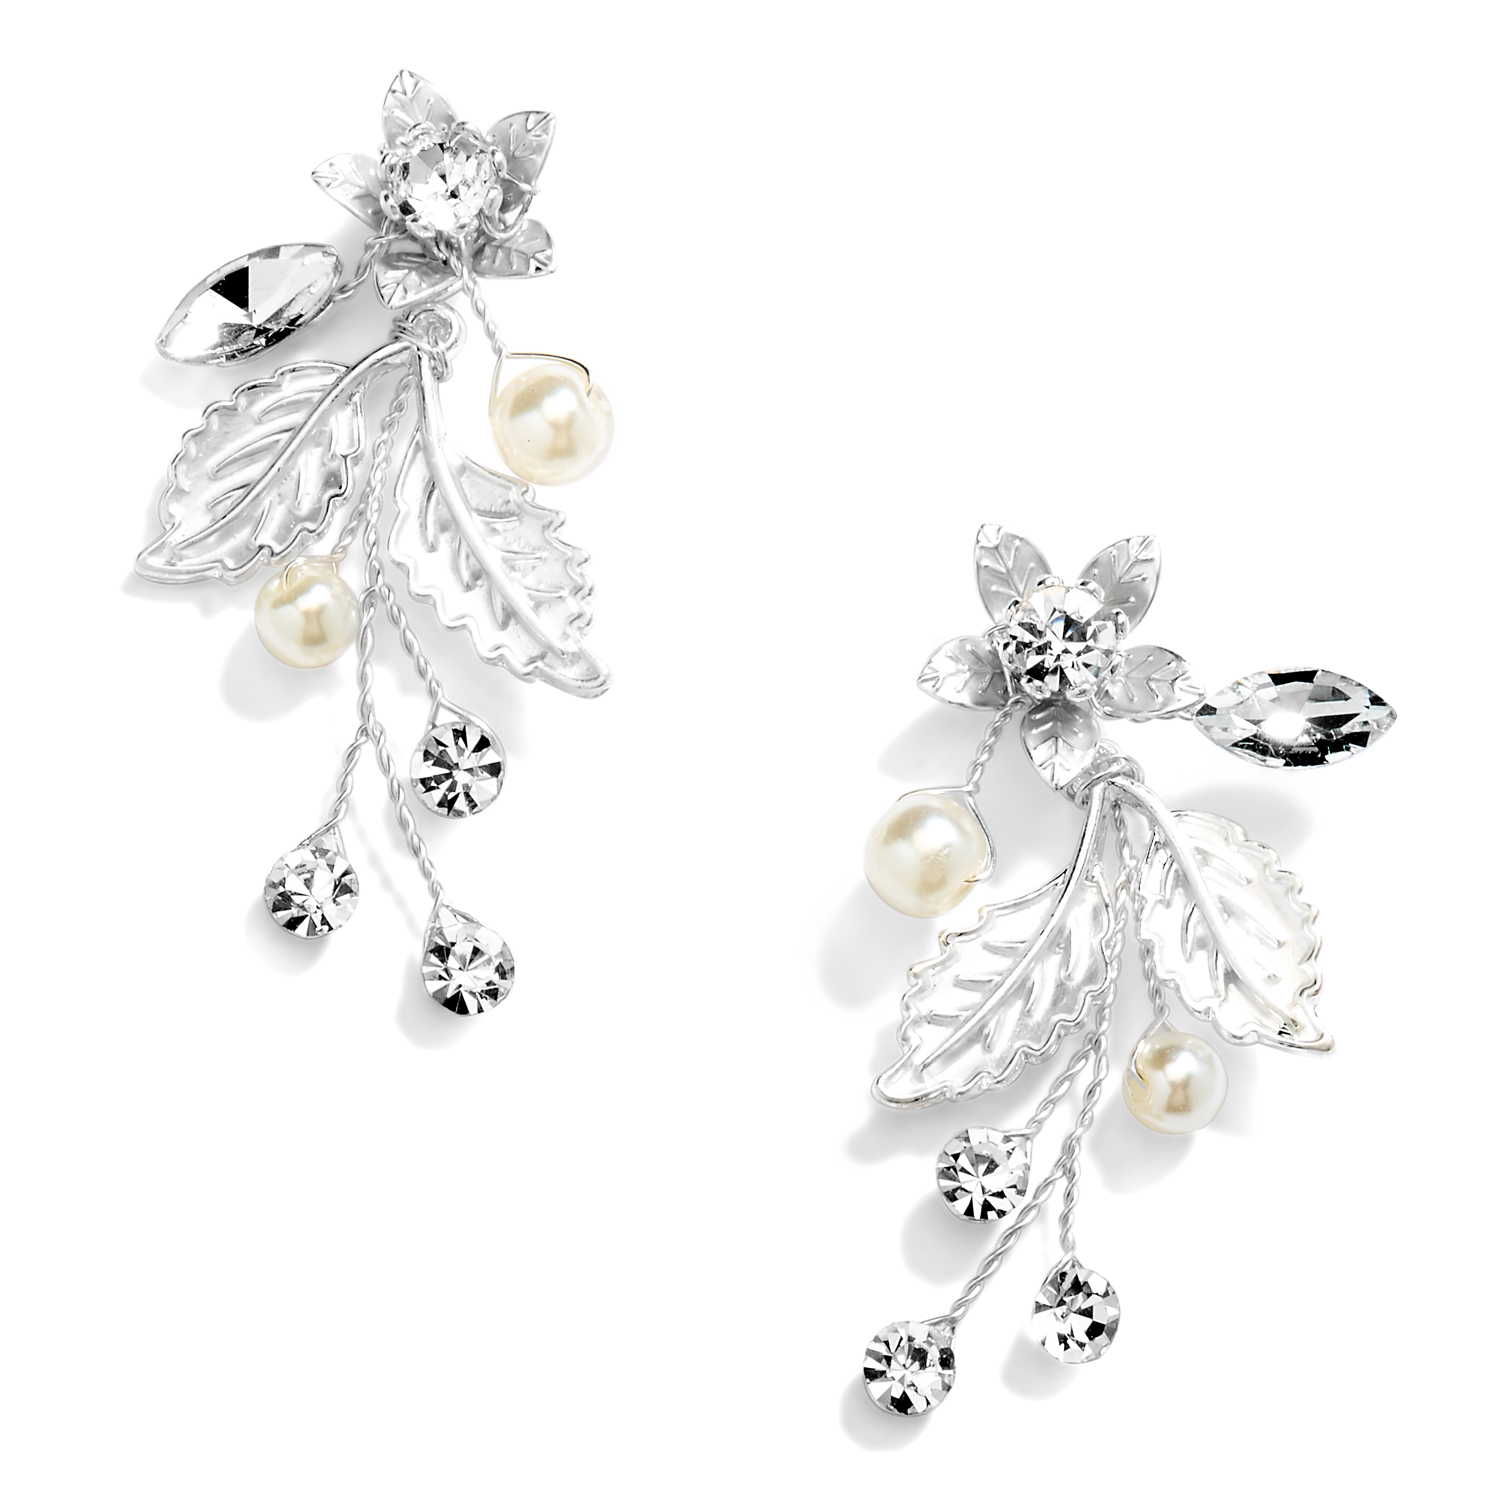 Jeweled Earrings with Crystal Gems, Matte Silver Leaves and Ivory Pearls<br>4598E-S